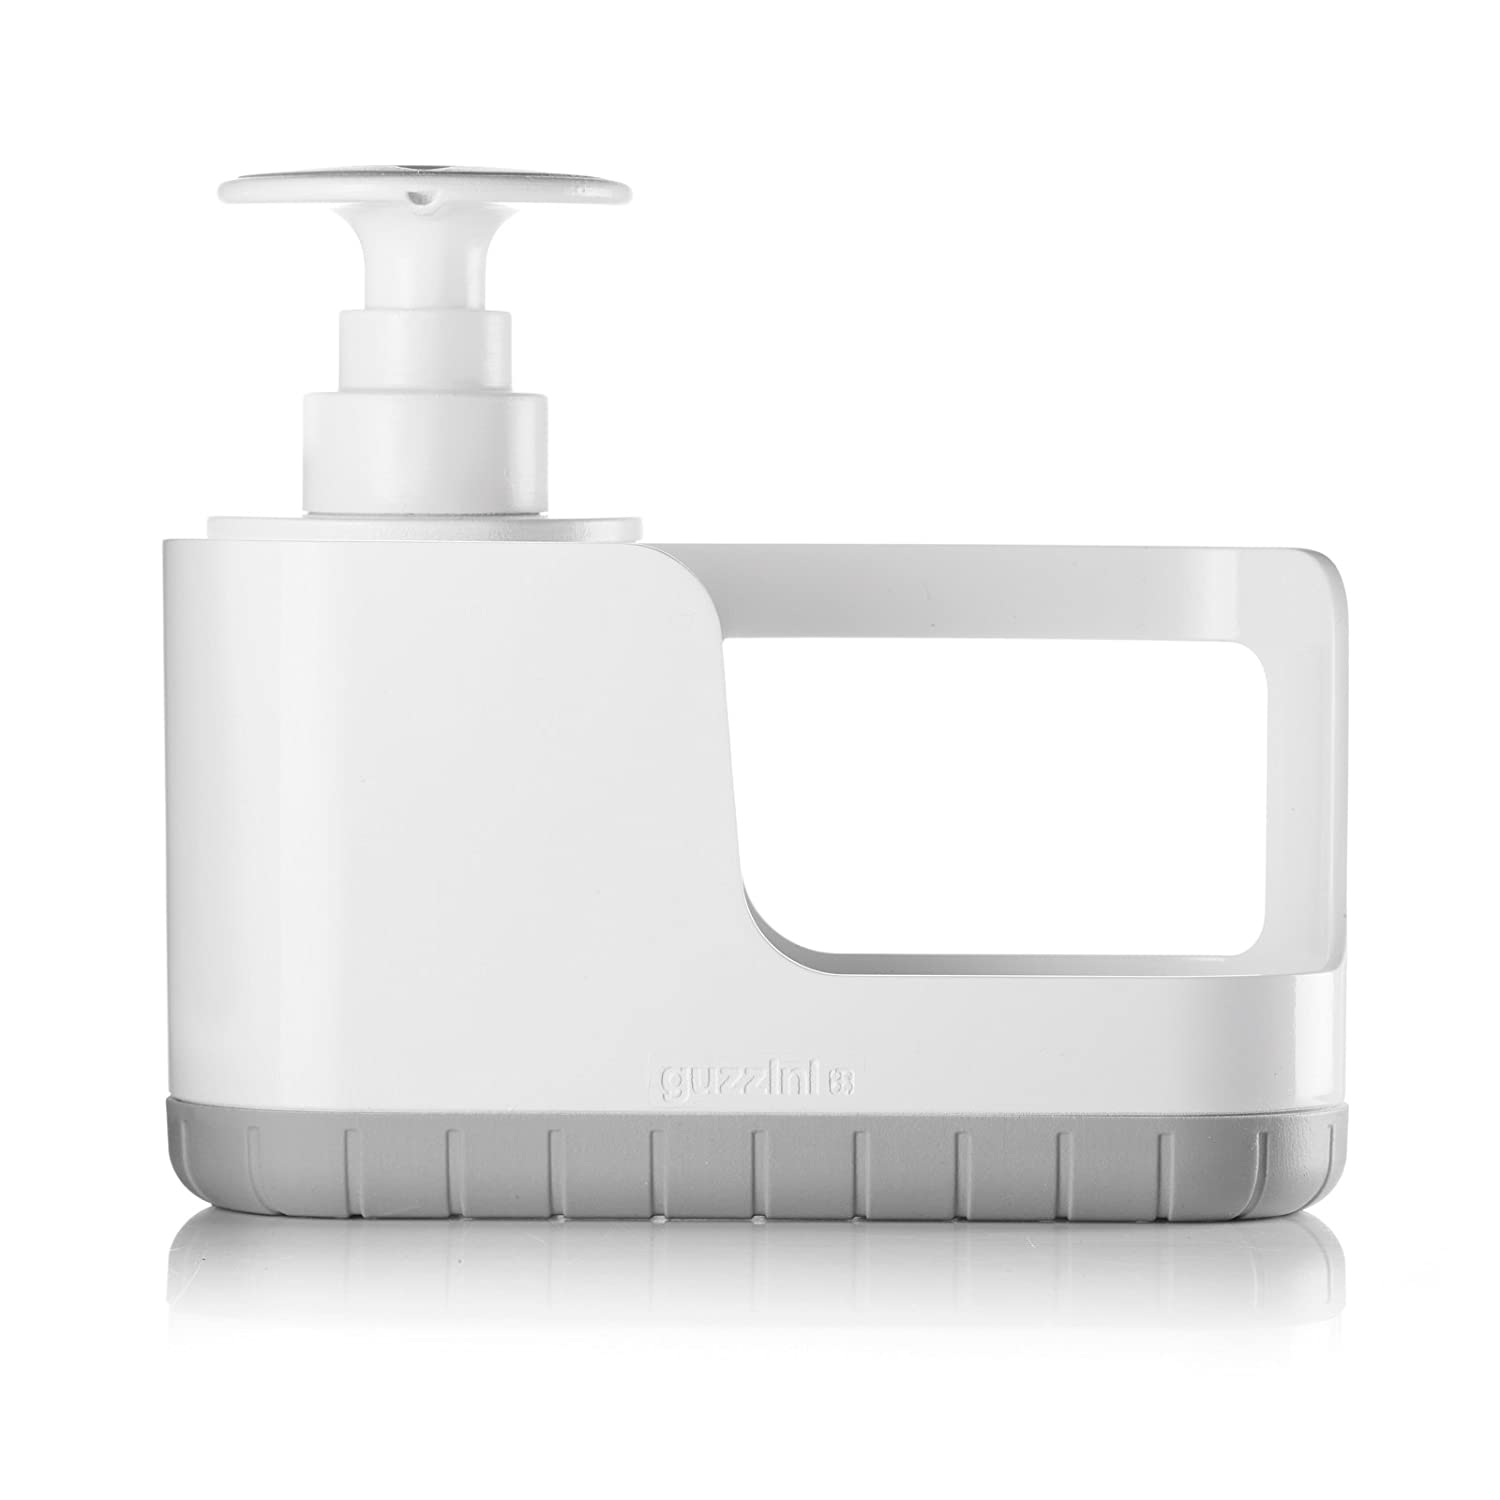 Guzzini My Kitchen Sink Tidy Caddy with Soap Dispenser, 7-1/2-Inches, Matte Grey 29040133